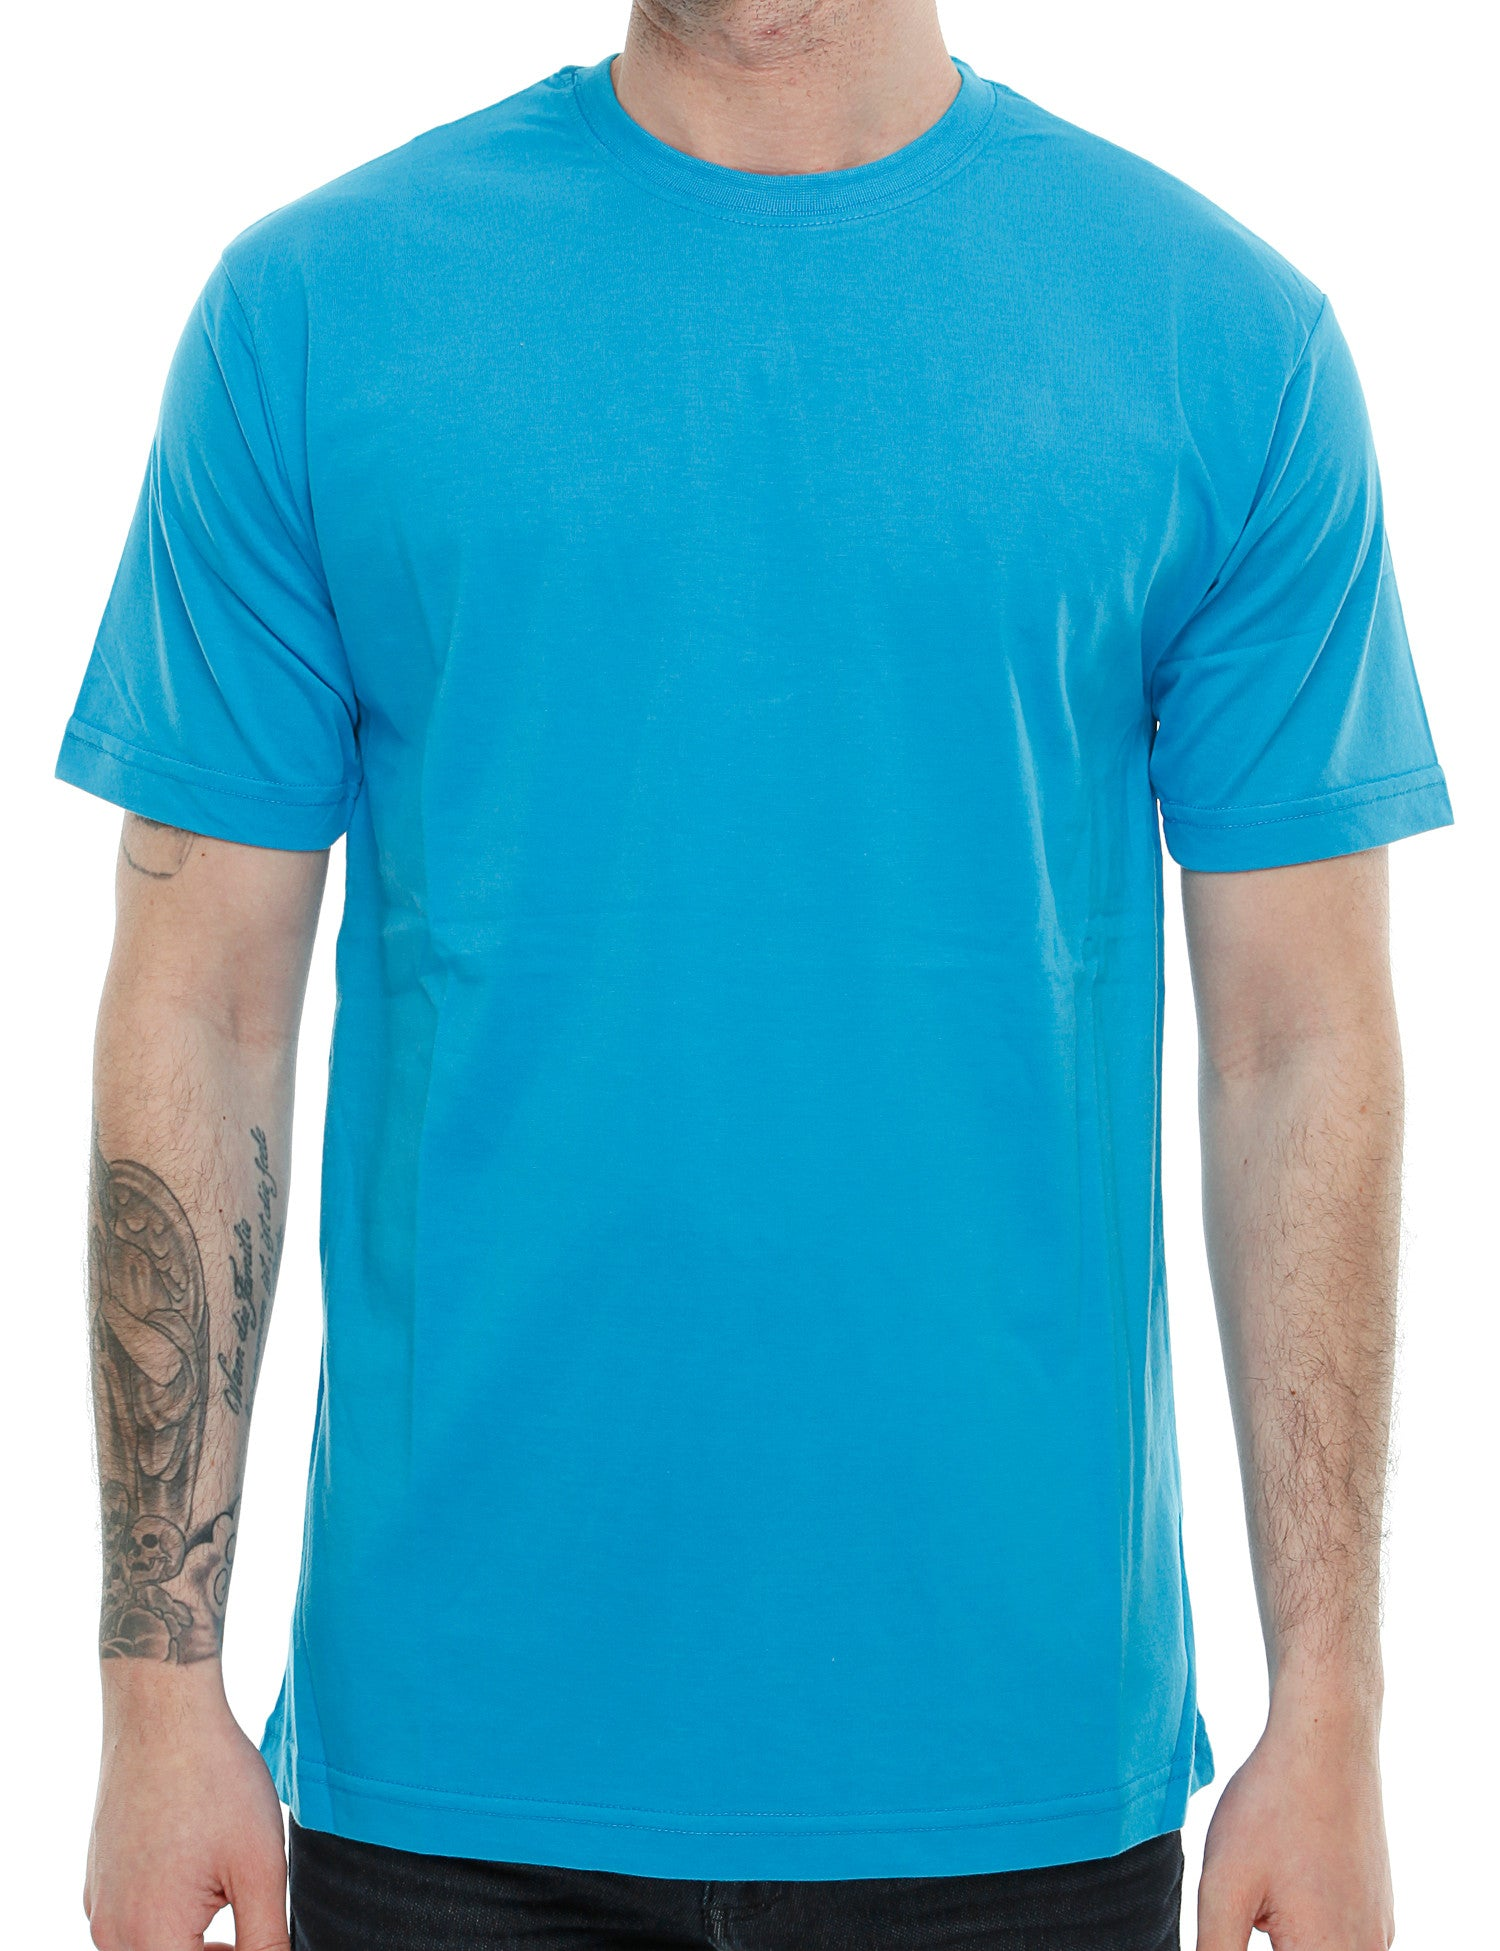 Raw Blue Solid Basic T-Shirt RB16-013 Blue